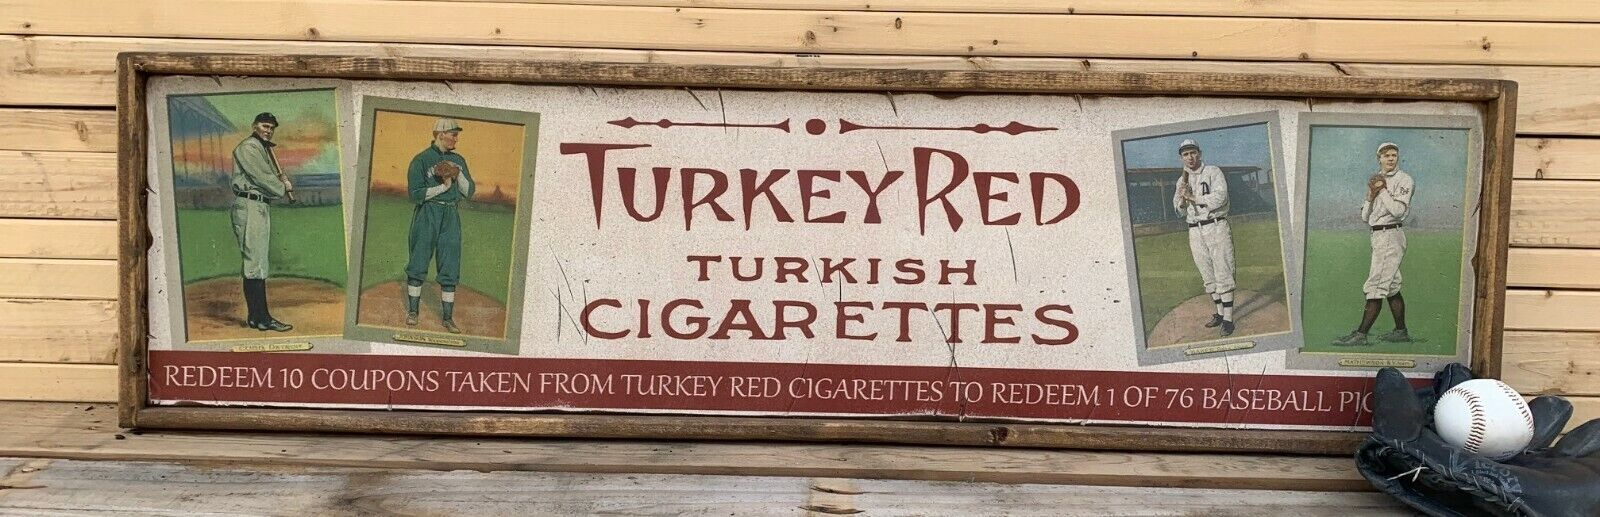 Awesome vintage style  t3 turkey red  baseball card  wooden sign wow cobb